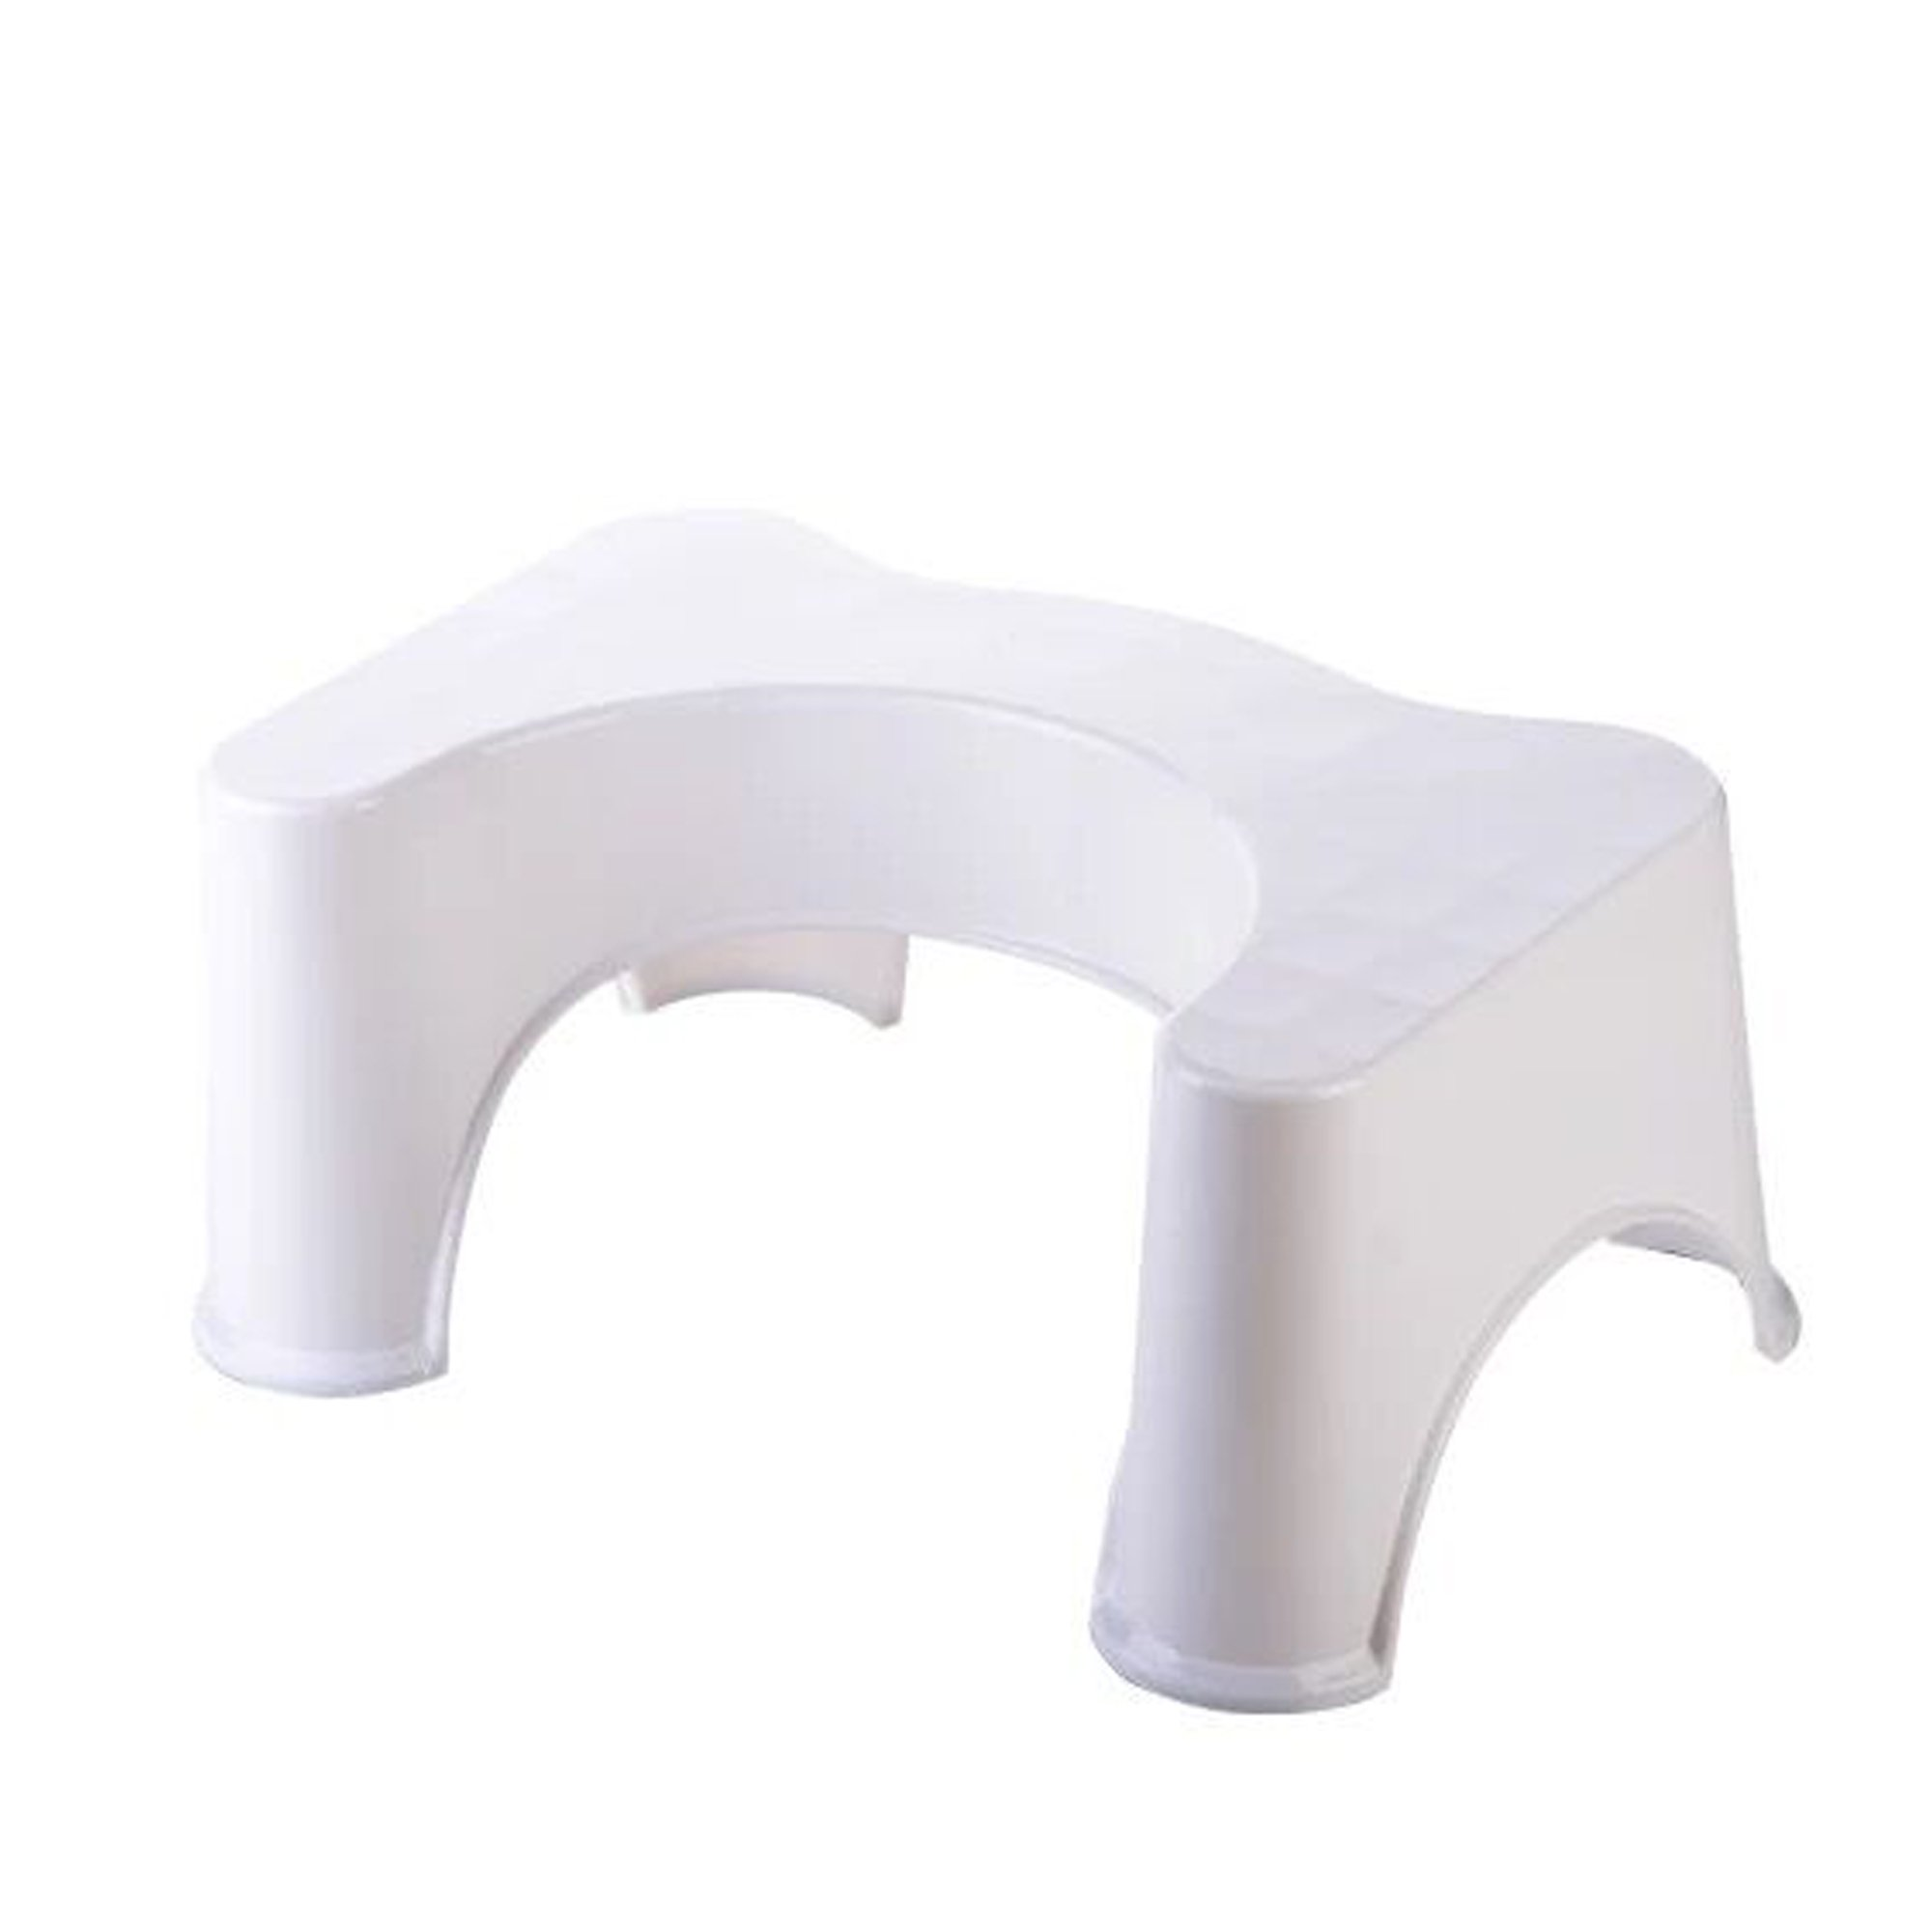 FYJUSTICE Footstool,The Original Bathroom Toilet Stool,7'',9'',3Colors,10-15Days To Arrive (WHITE-LARGE)